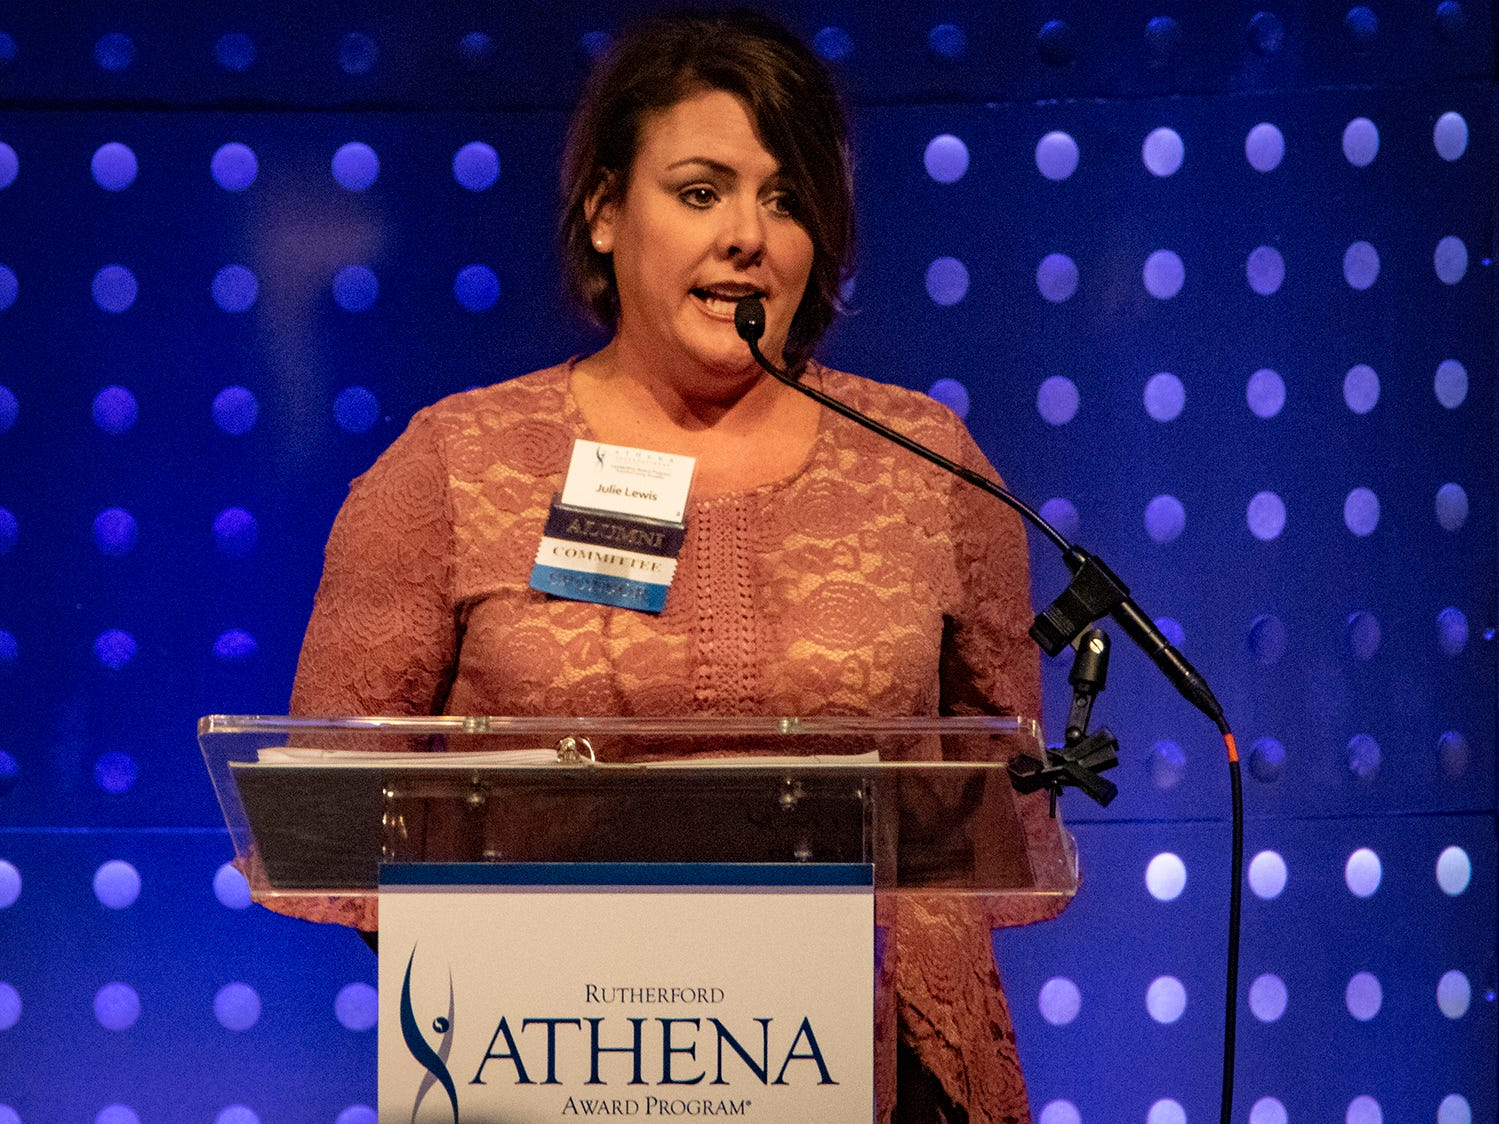 Julie Lewis recognizes sponsors of the annual ATHENA Leadership Awards, hosted by Rutherford Cable Friday, April 12, 2019 at Embassy Suites Murfreesboro.